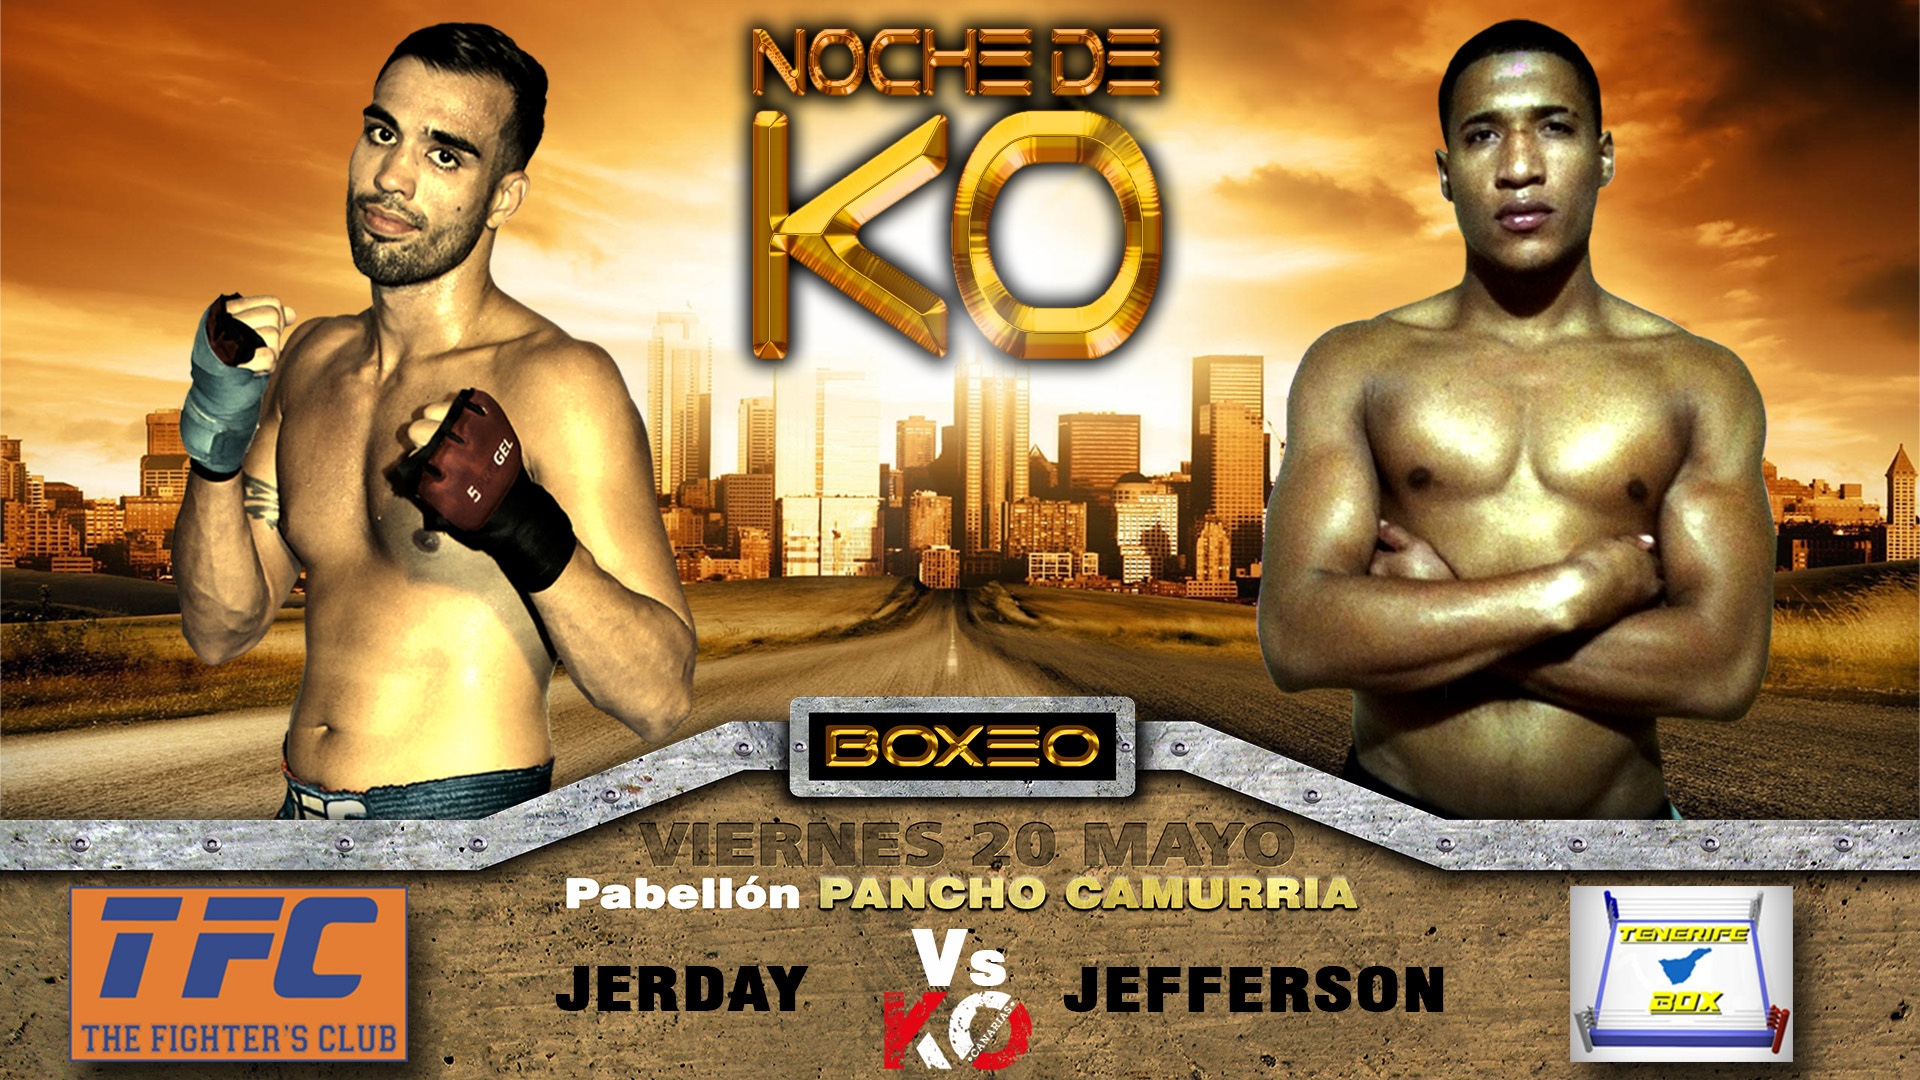 Jerday Vs Jefferson, noche de KO